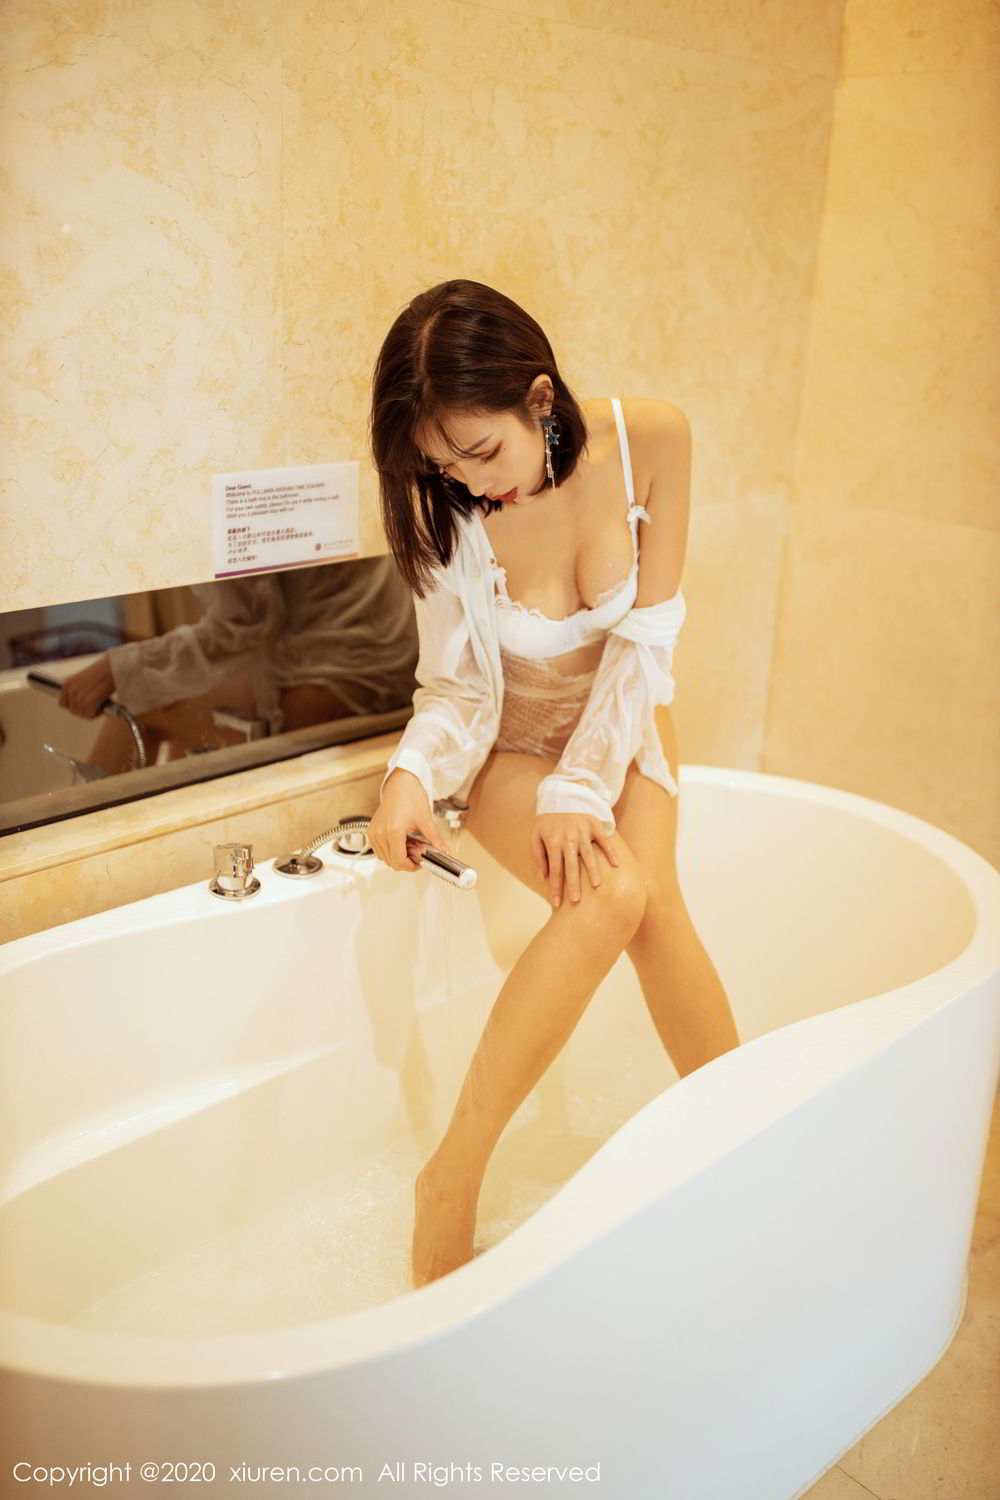 [XiuRen] Vol.2158 Chen Xiao Miao 22P, Bathroom, Chen Xiao Miao, Tall, Wet, Xiuren